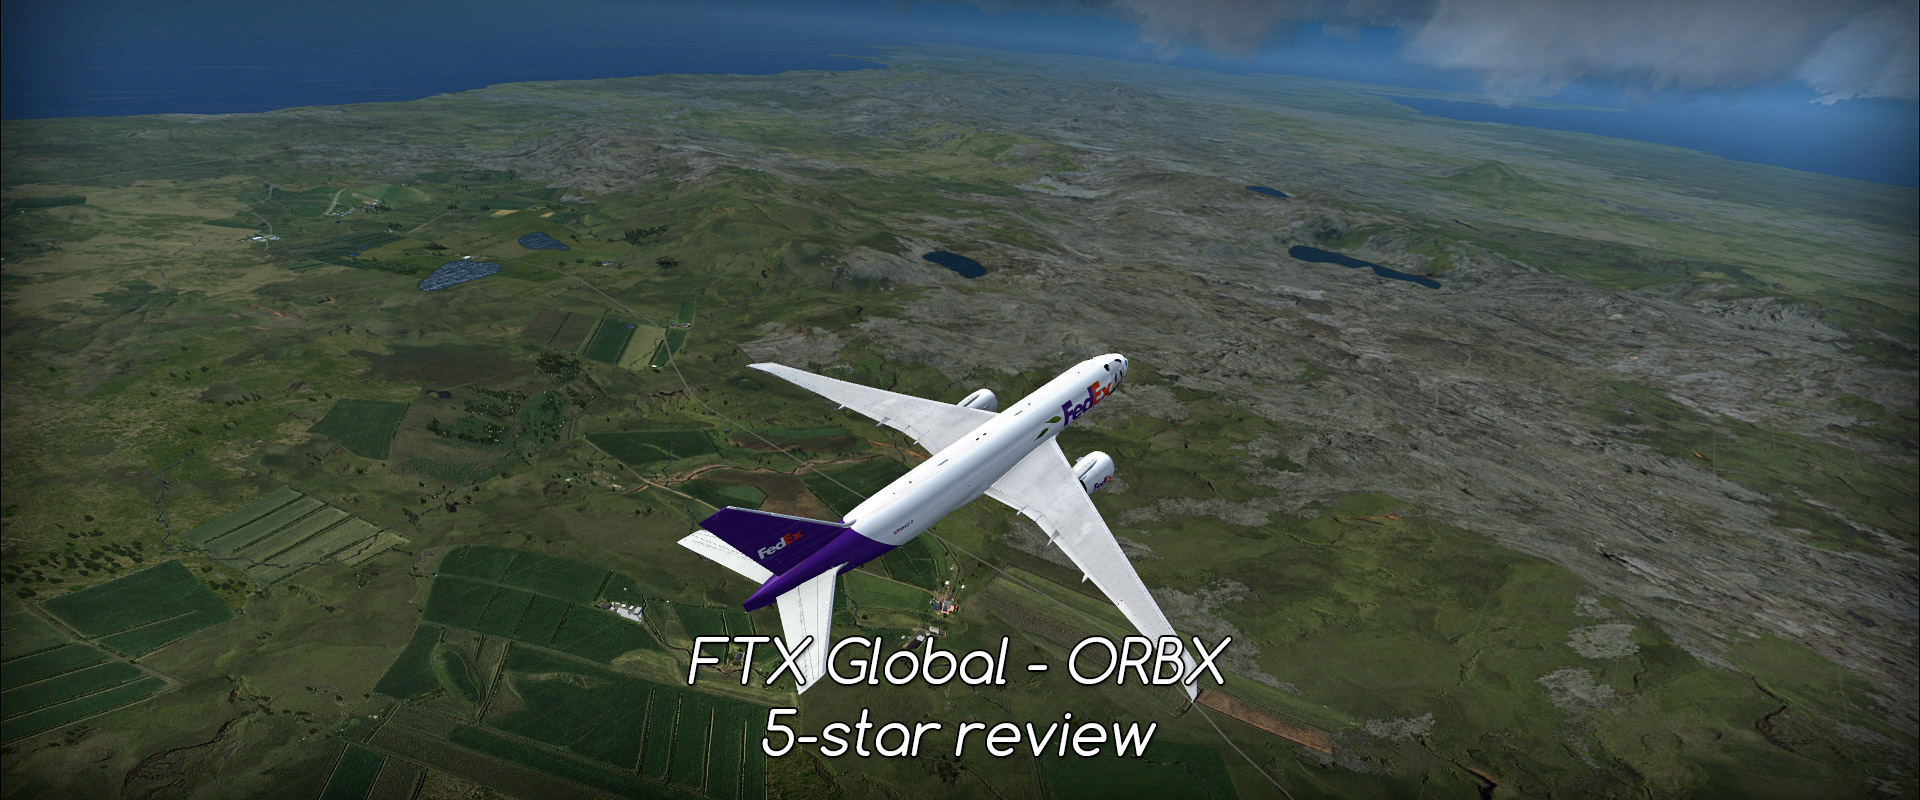 FTX Global - ORBX - review (5*) • C-Aviation